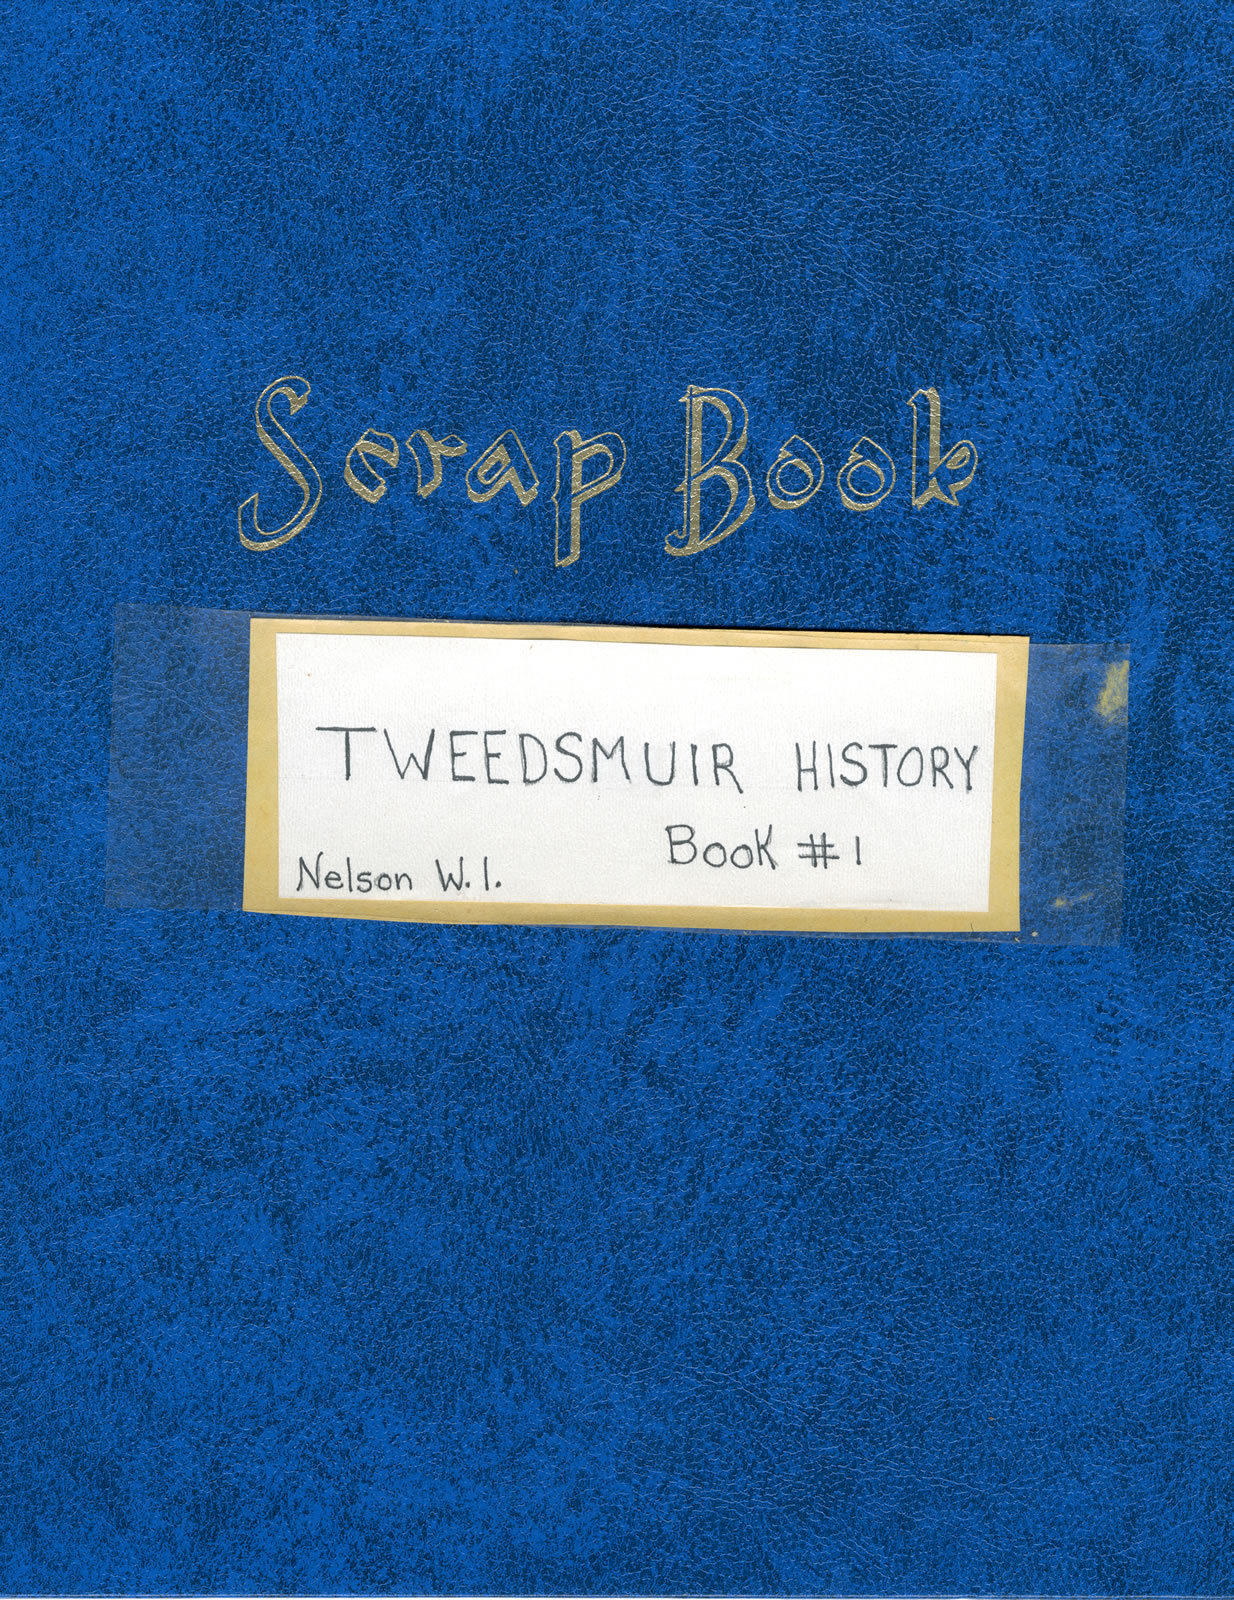 Nelson Women's Institute Tweedsmuir History, Book I (of 3 Books, currently available on OurOntario.ca)